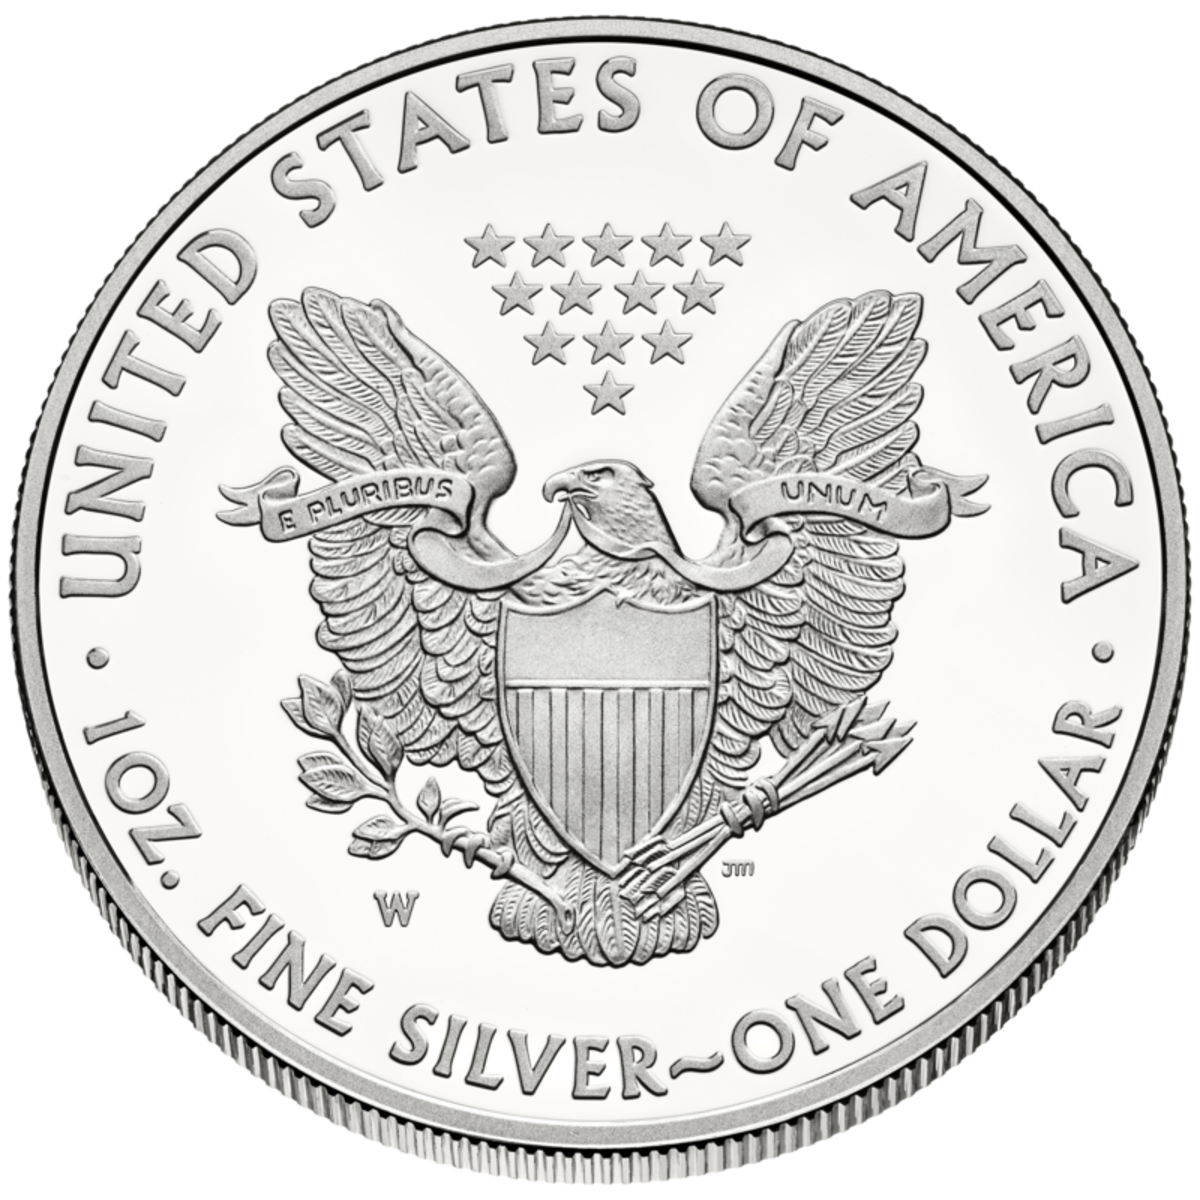 Reverse side Liberty $1 United States silver coin